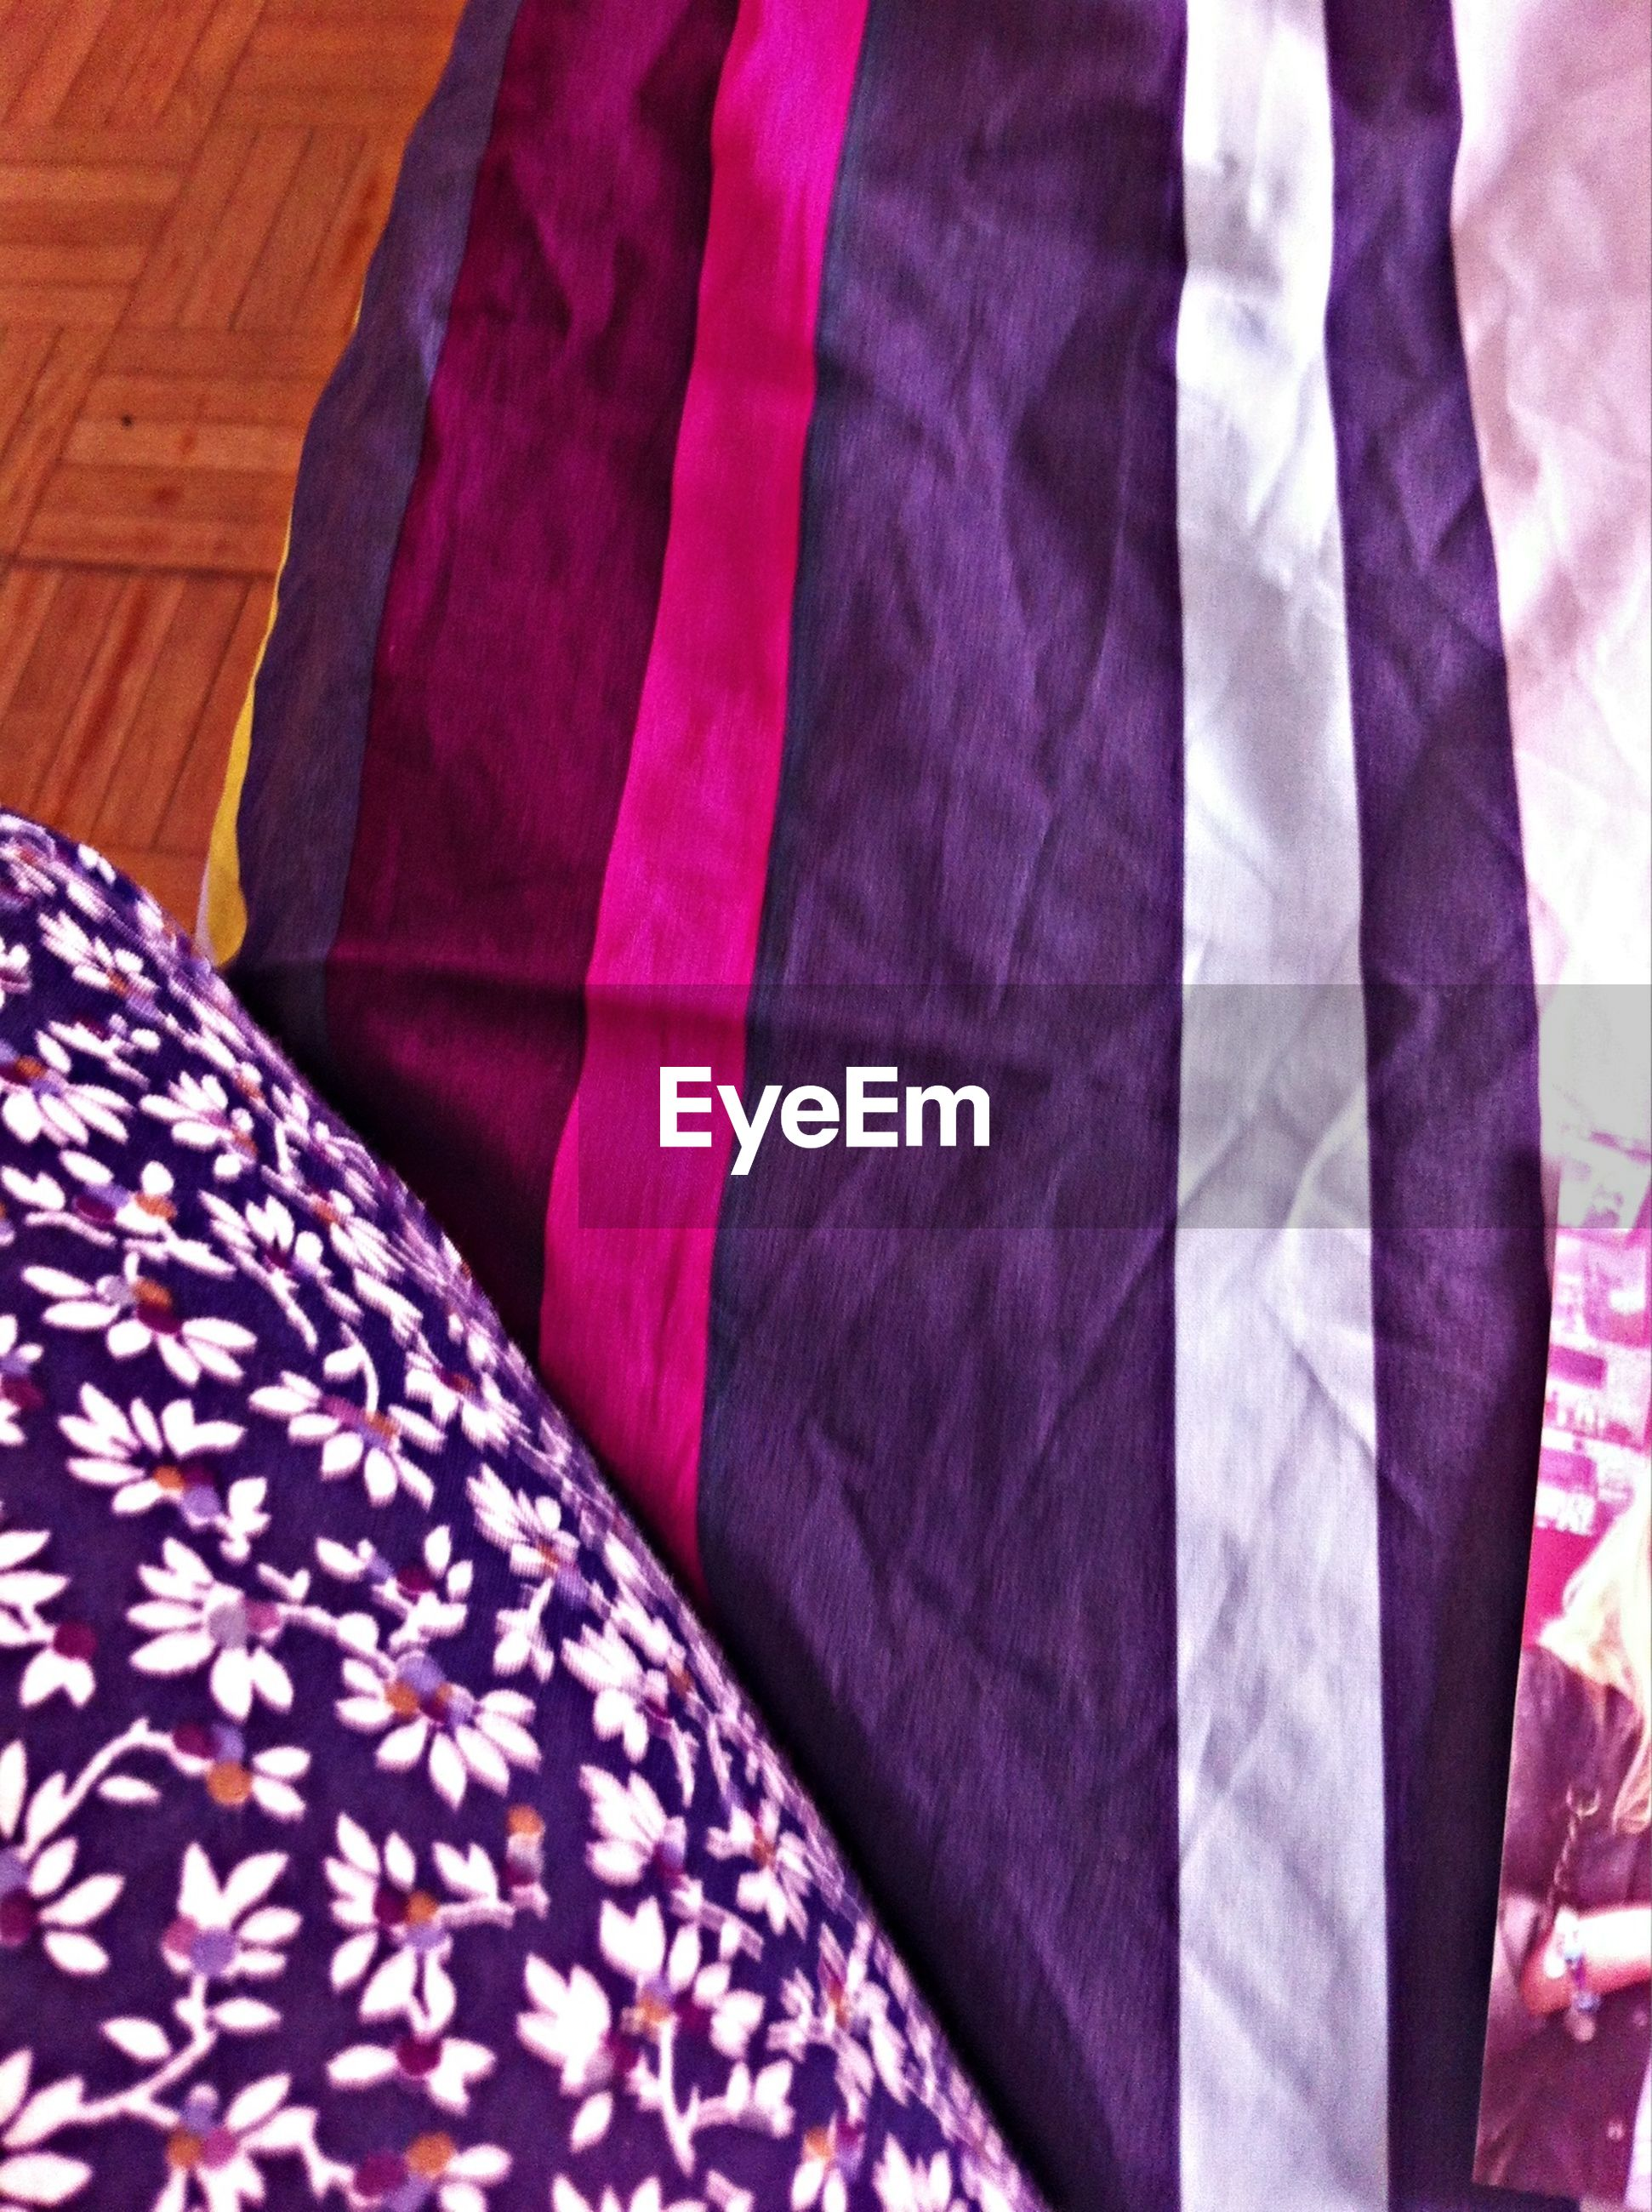 indoors, textile, fabric, pattern, full frame, bed, red, design, backgrounds, multi colored, close-up, textured, sheet, floral pattern, high angle view, pink color, material, blanket, no people, striped